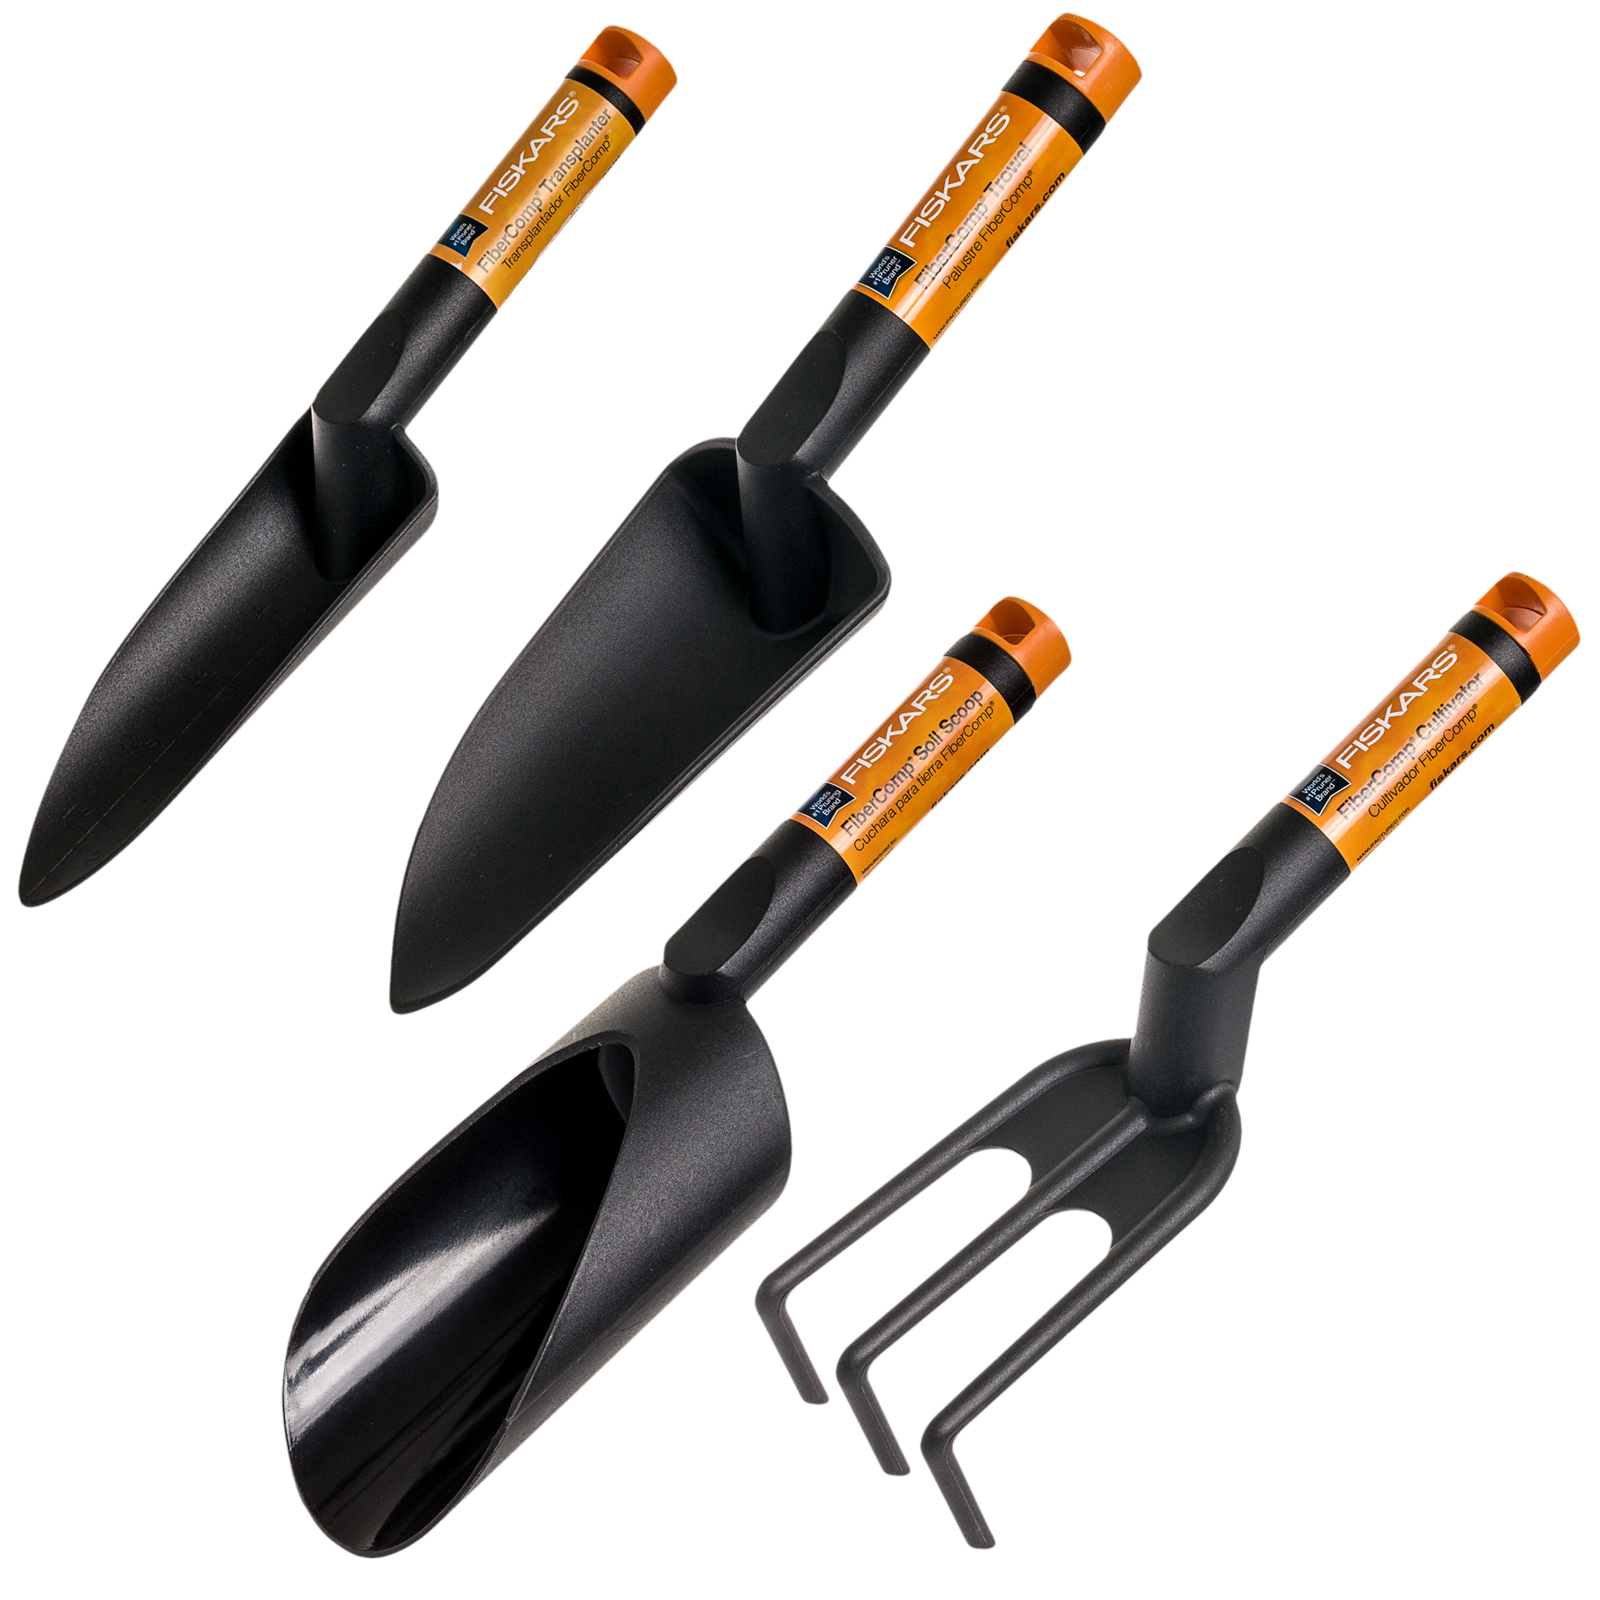 Fiskars new fibercomp garden gardening landscaping yard for Gardening tools 4 letters